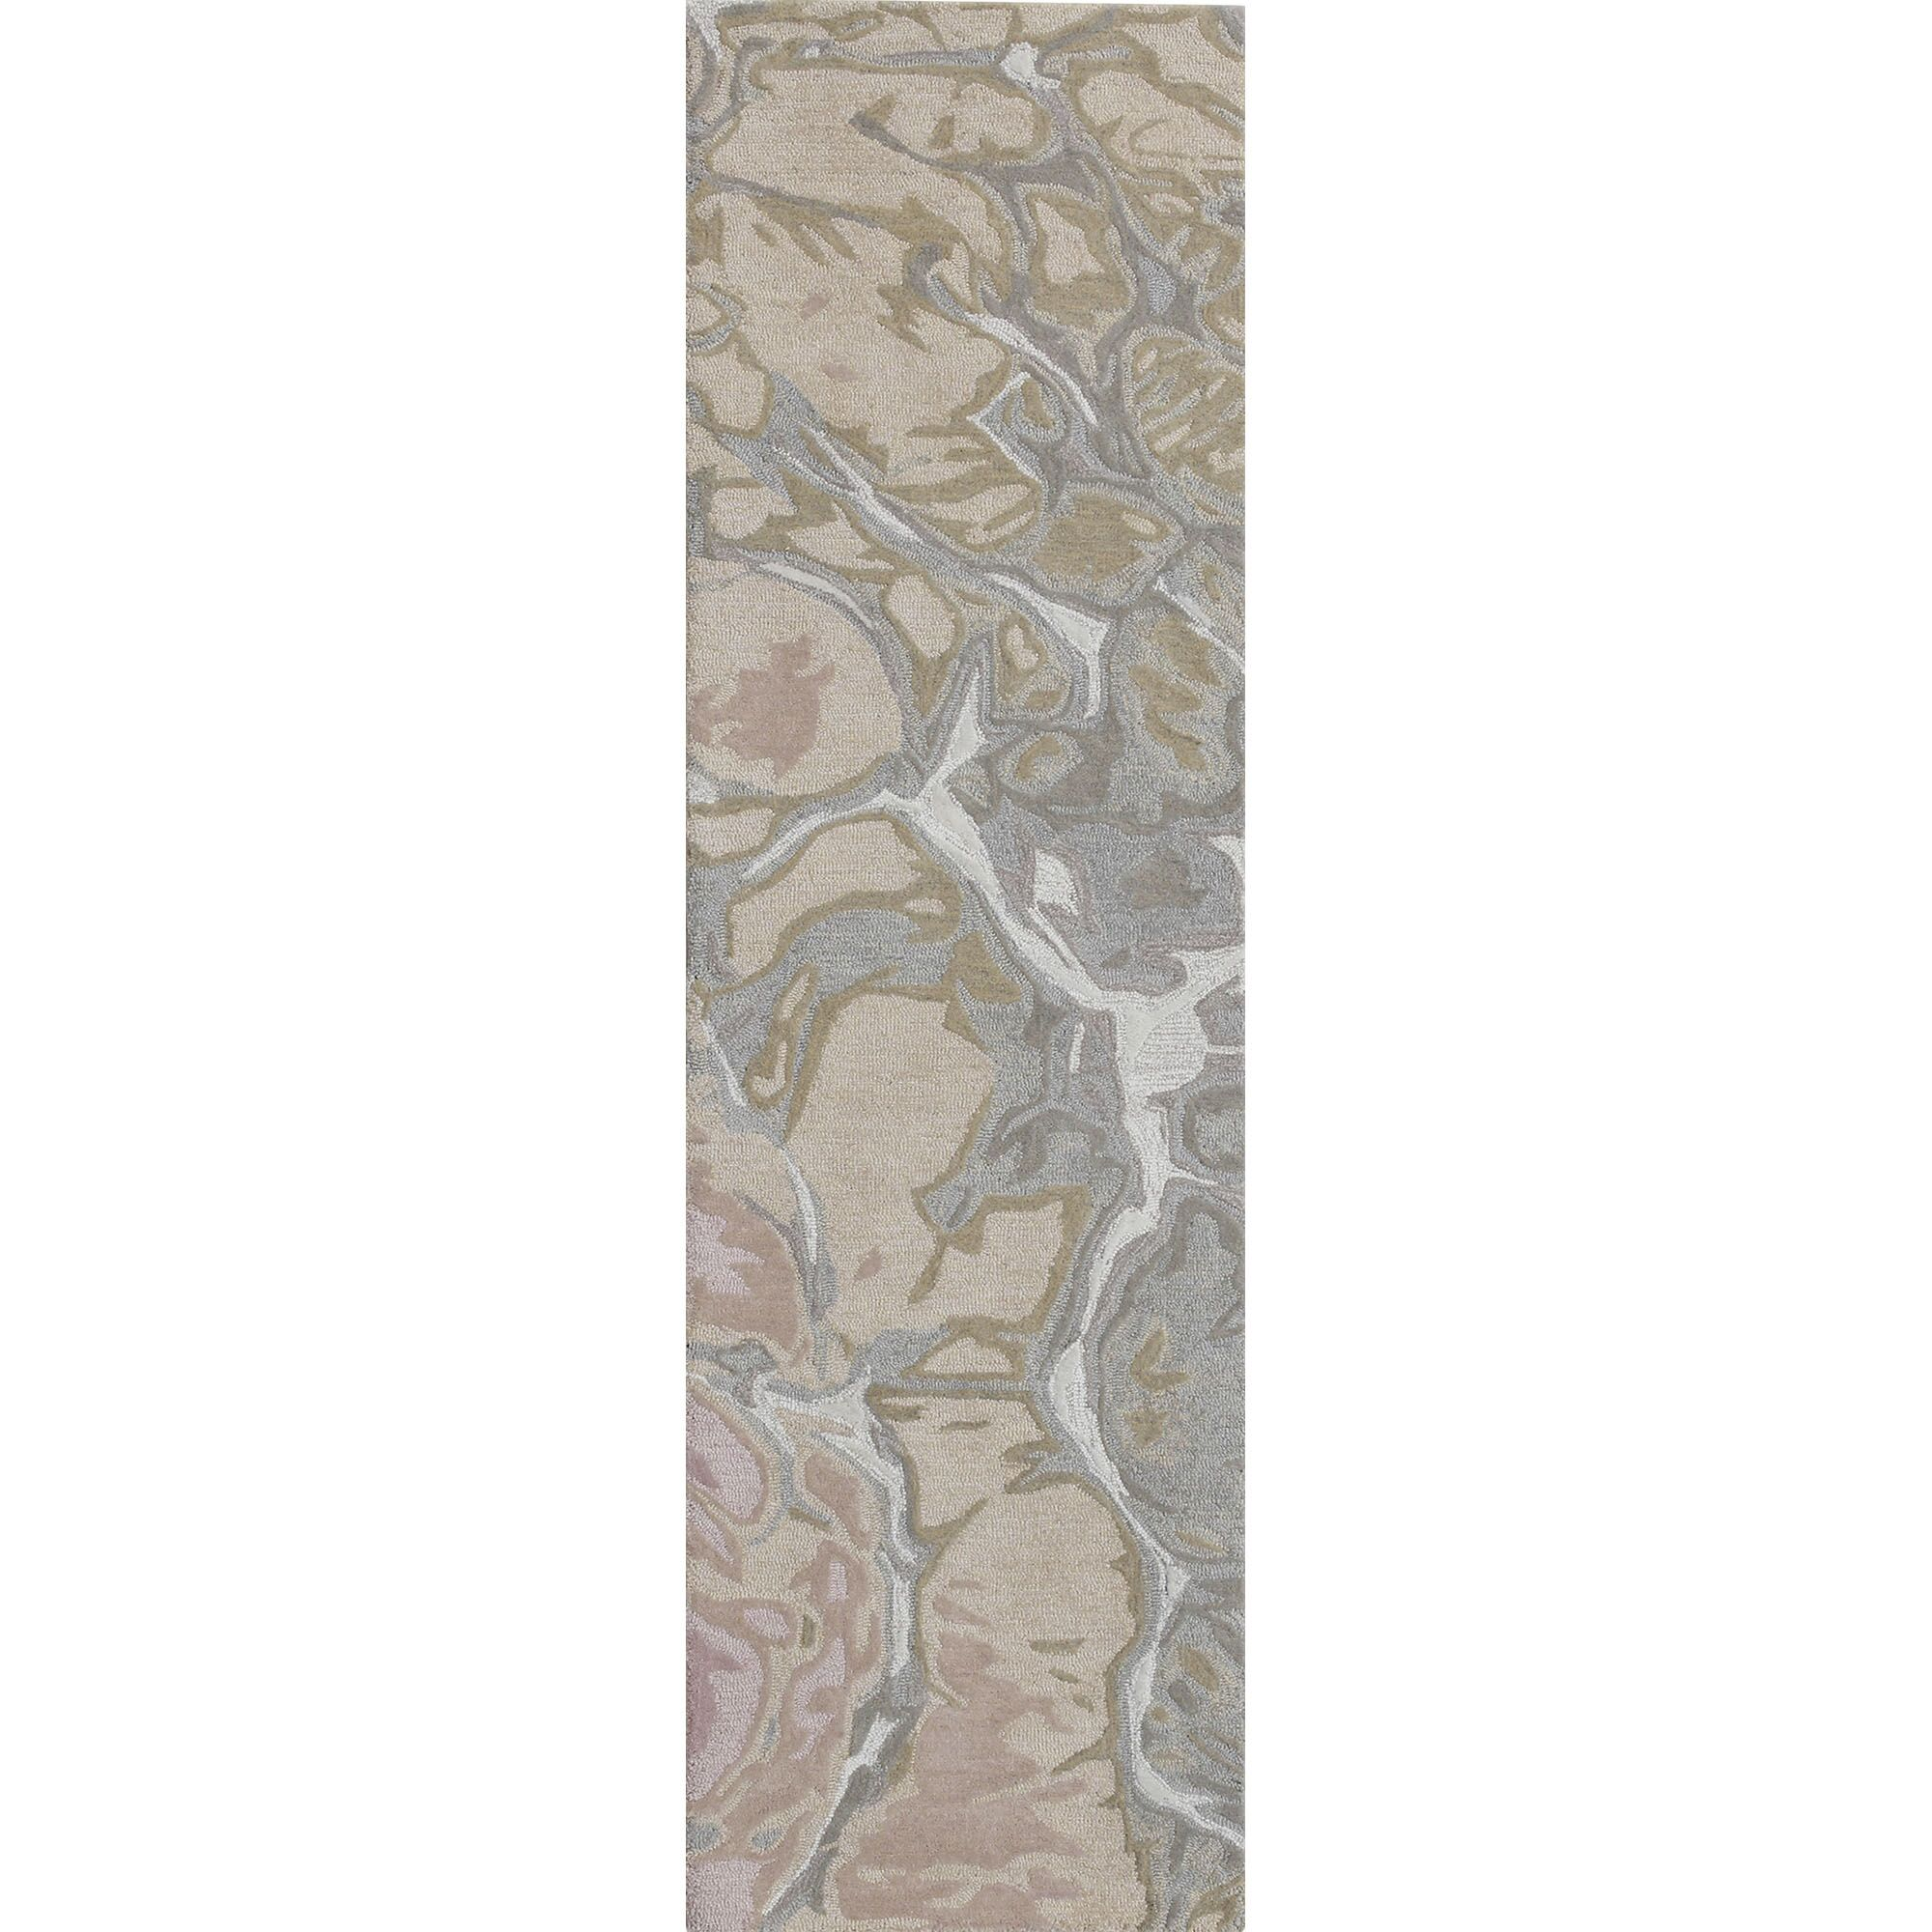 Groce Water Hand-Tufted Wool Brown/Gray Area Rug Size: Runner 2' x 7'6